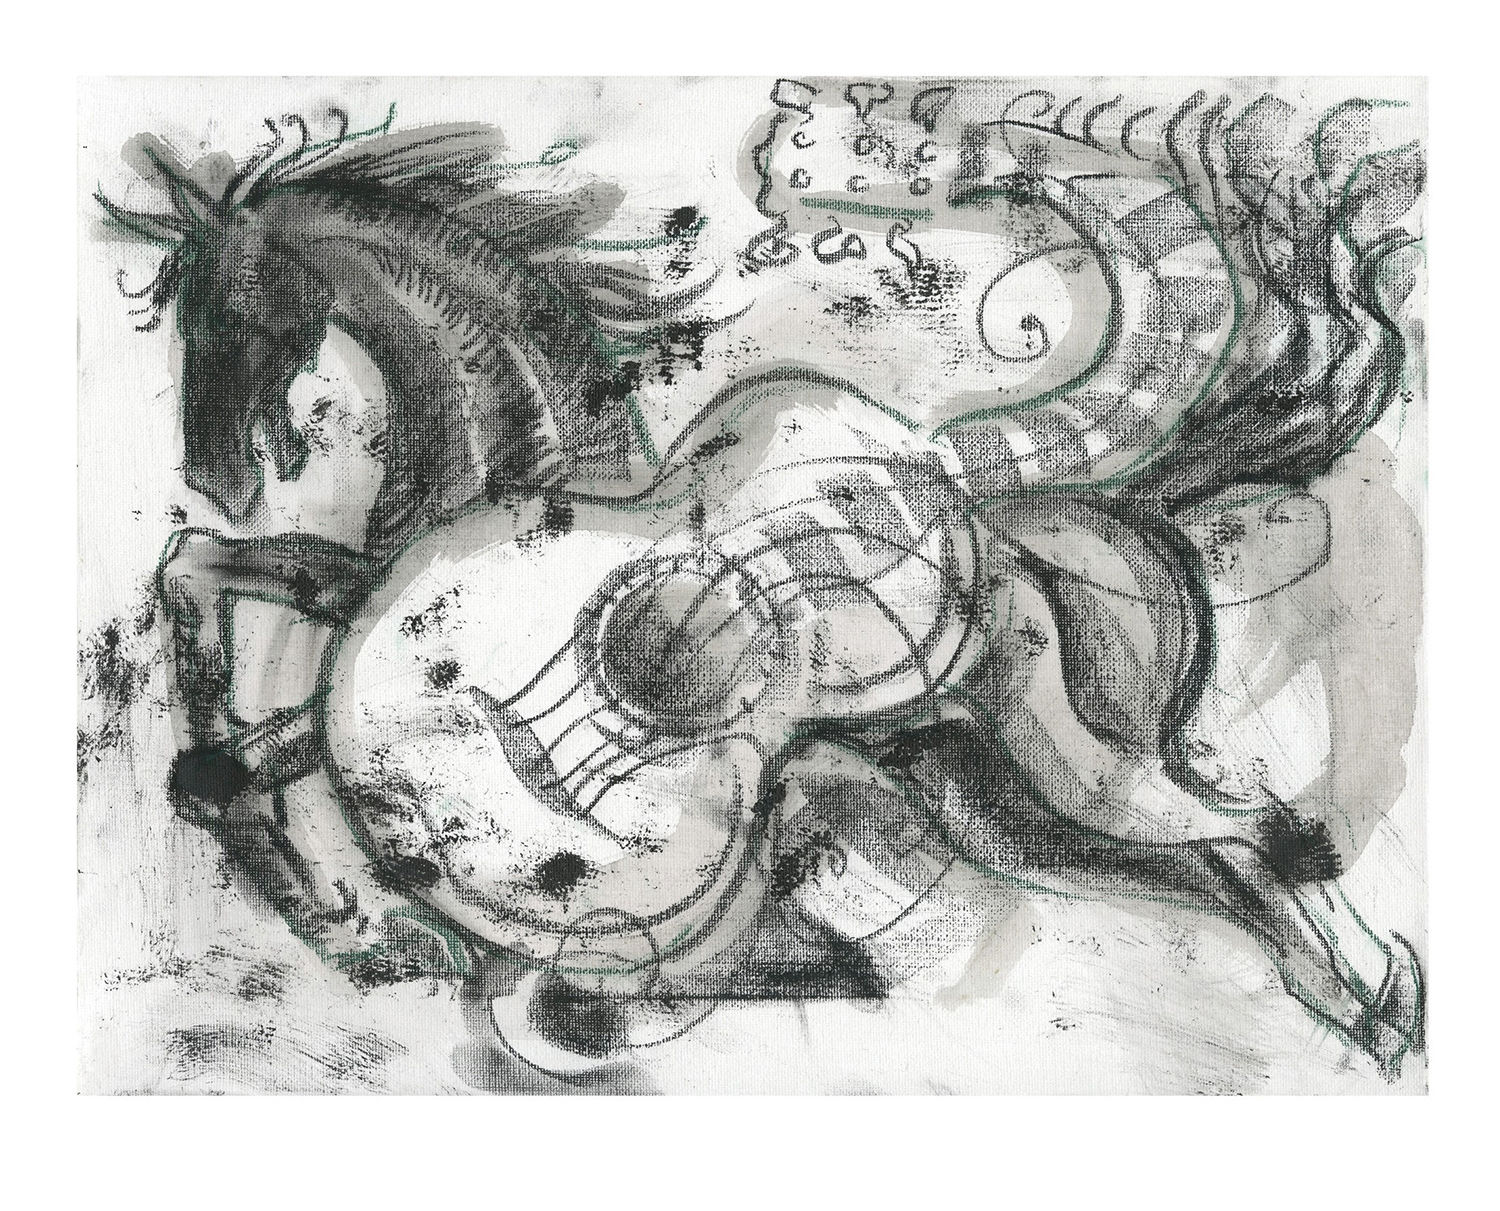 Ronnie Wood: Horse And Guitar Study 2